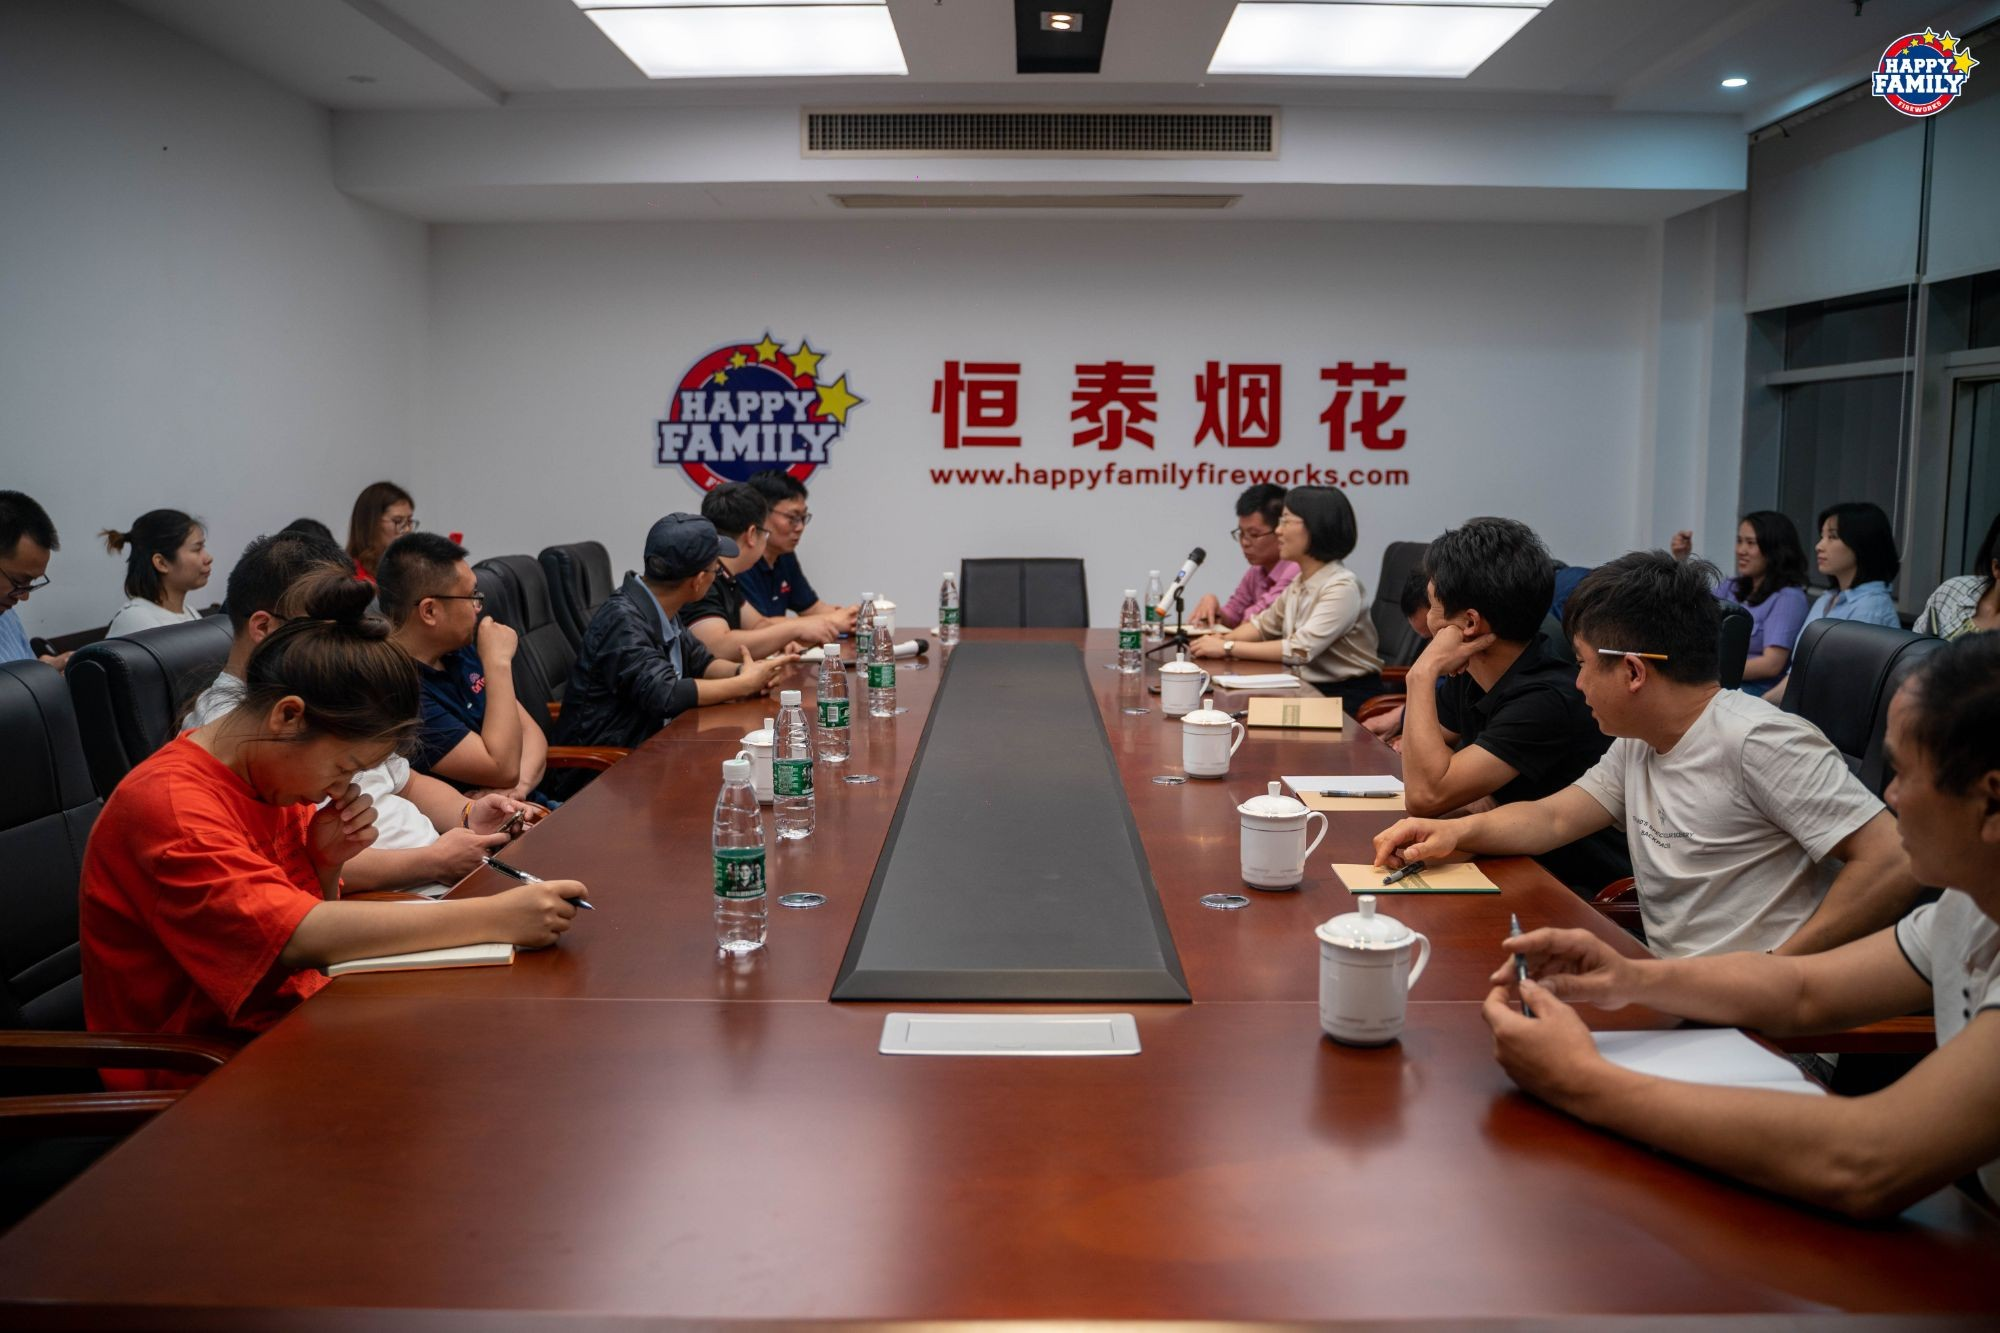 Happy Family Fireworks Factory carried out CE regulations training records on May 11, 2021